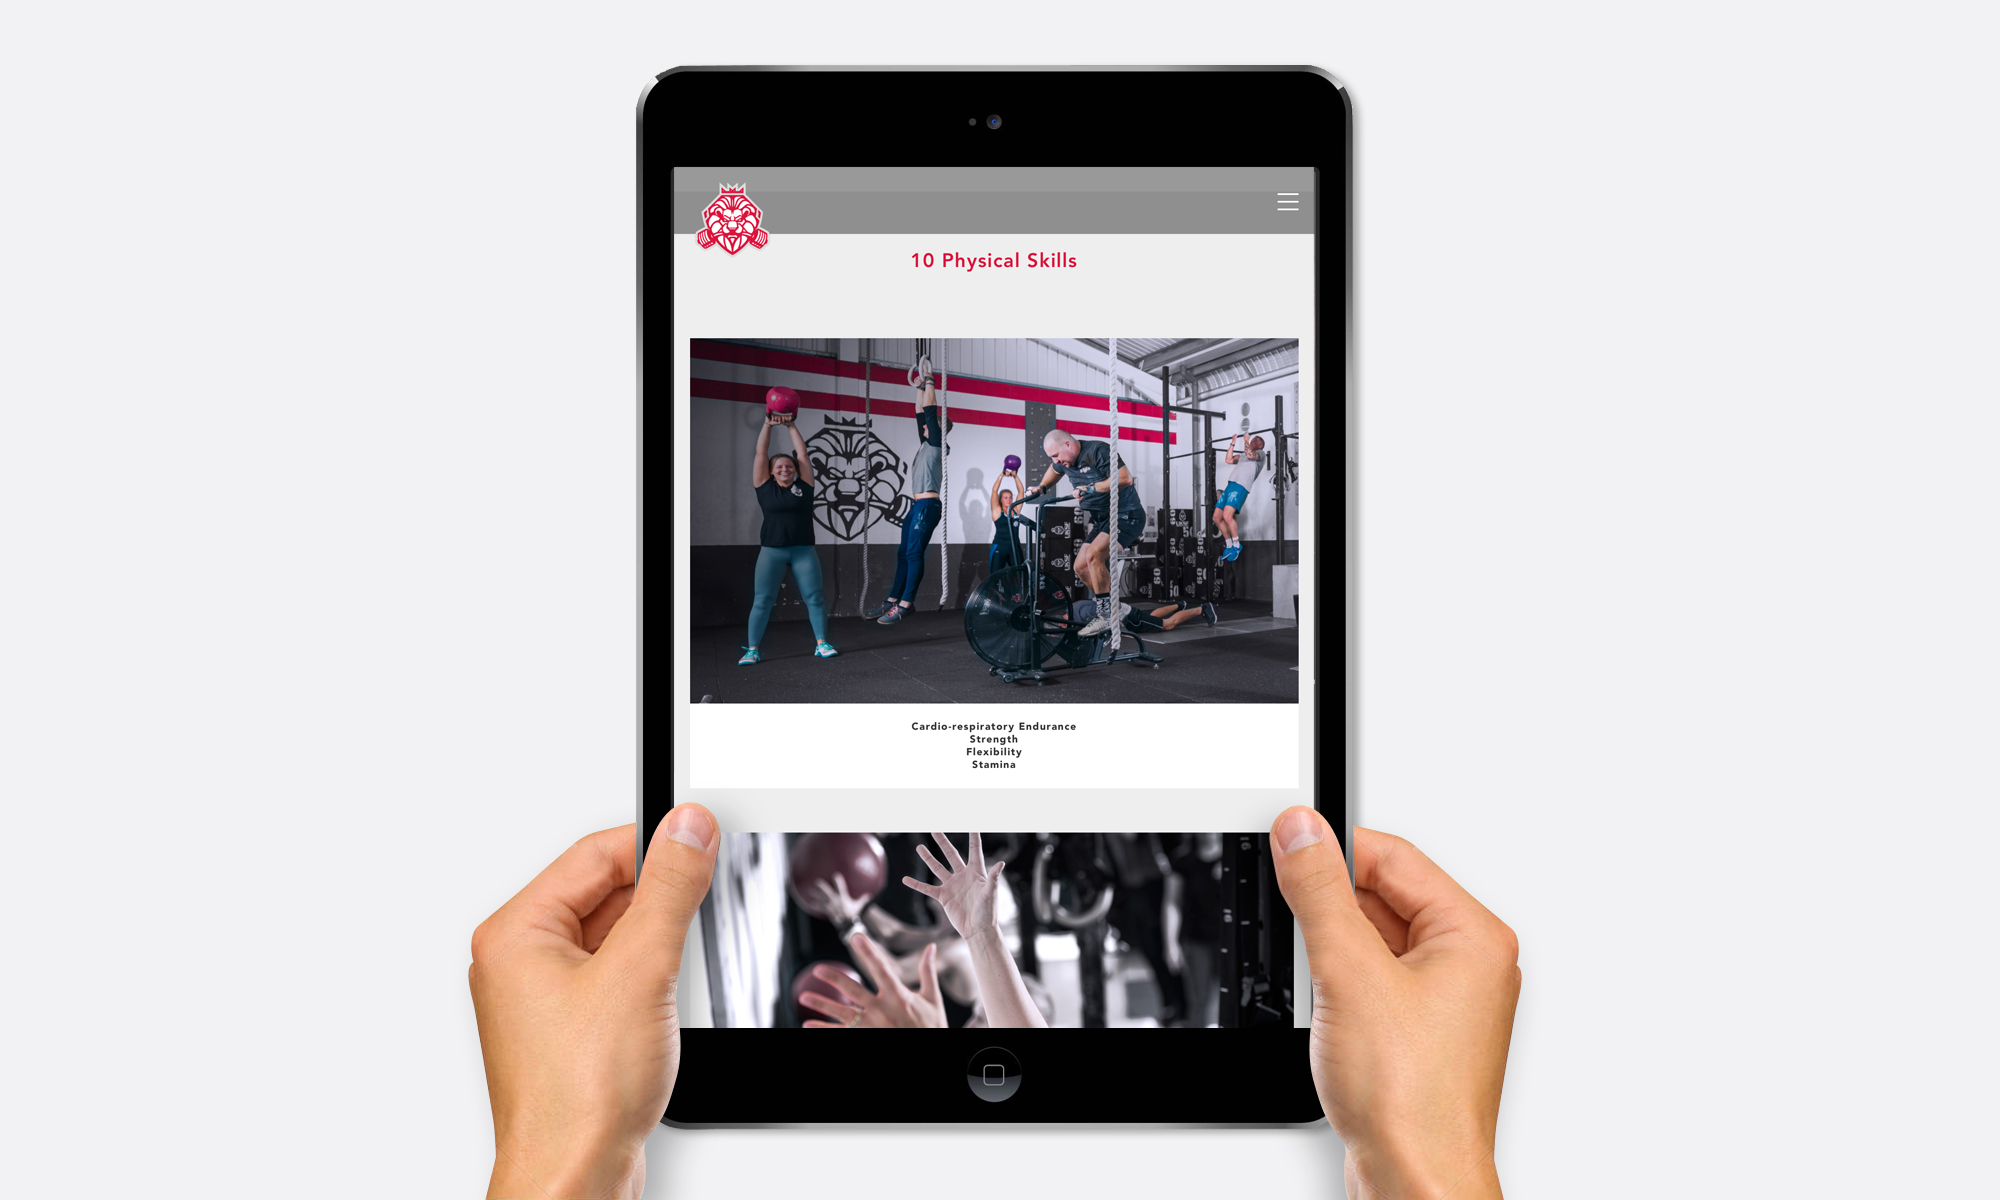 crossfit hayle work website ipad